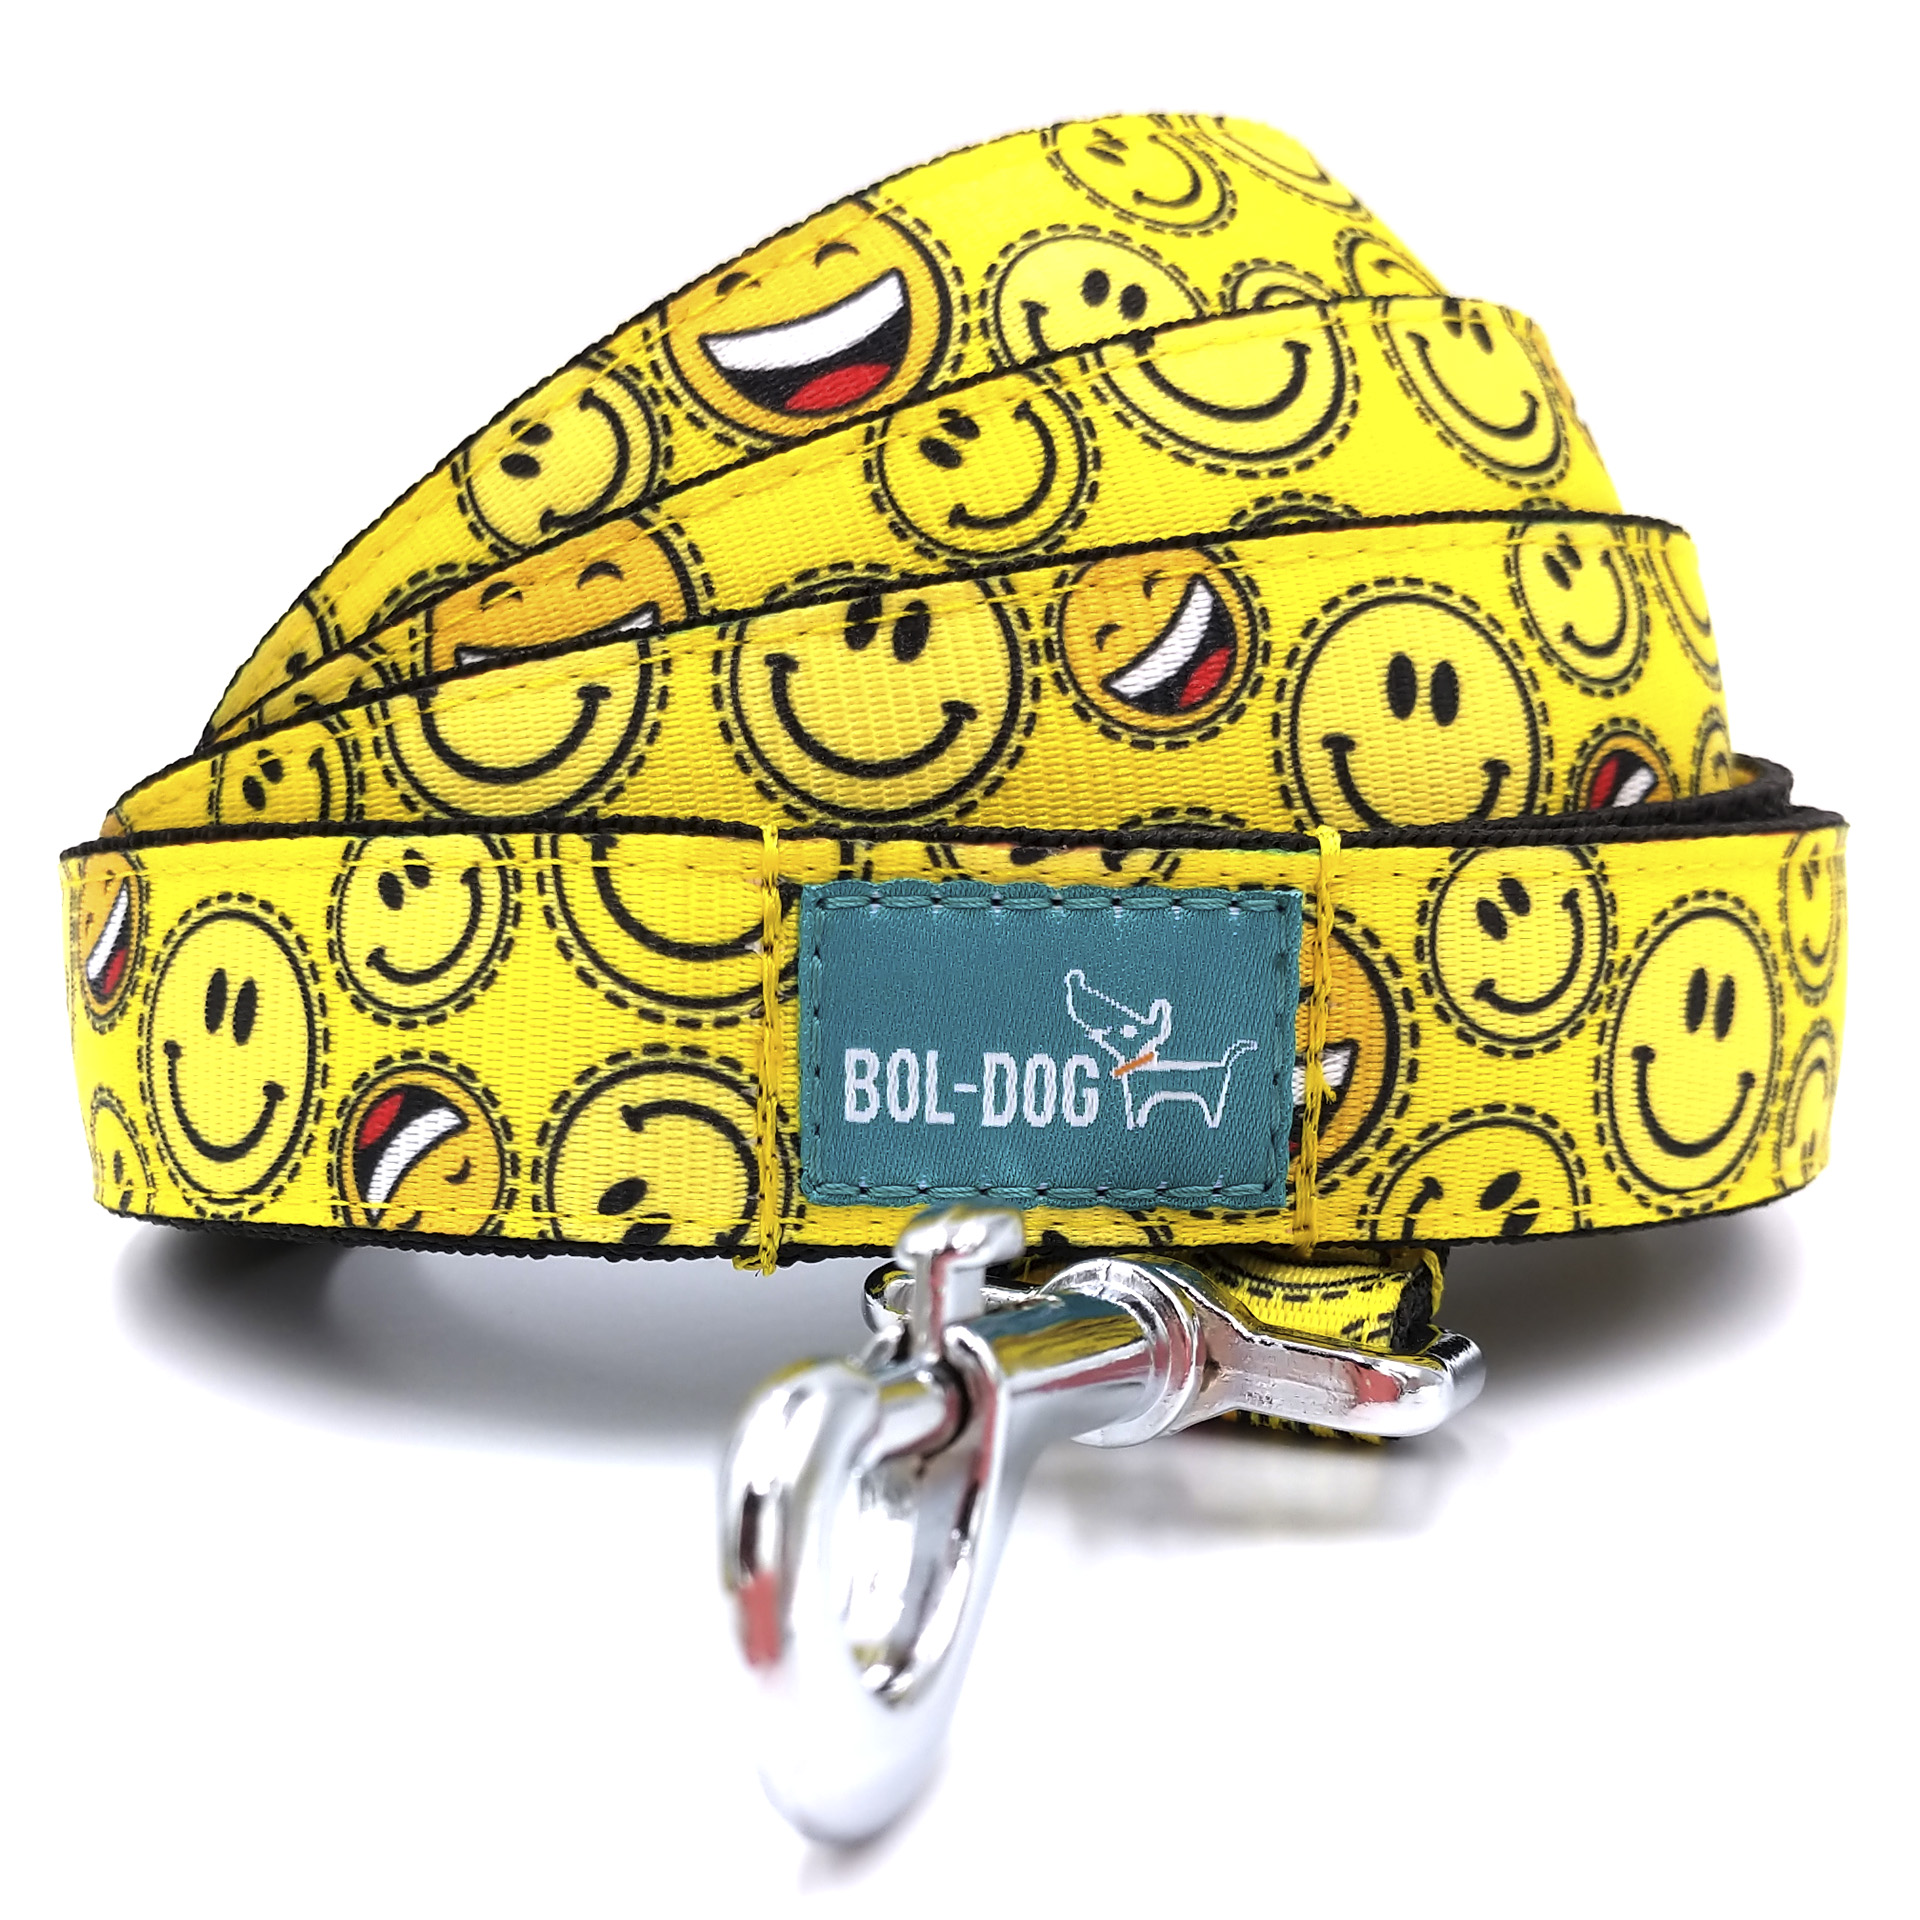 Smiley dog leash